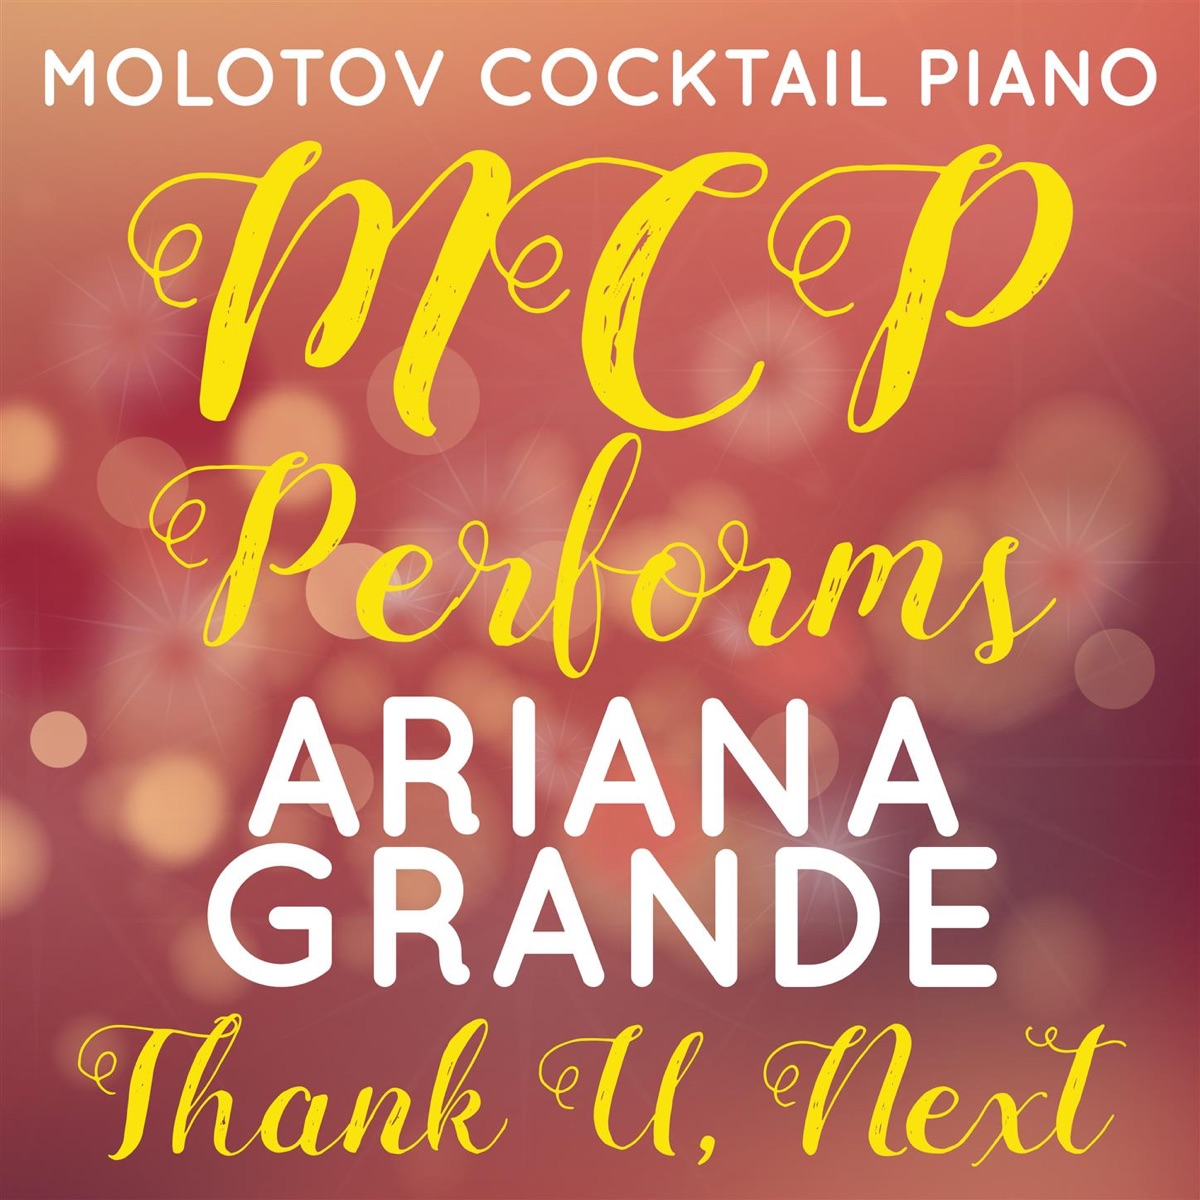 MCP Performs Ariana Grande Thank U Next Instrumental Molotov Cocktail Piano CD cover